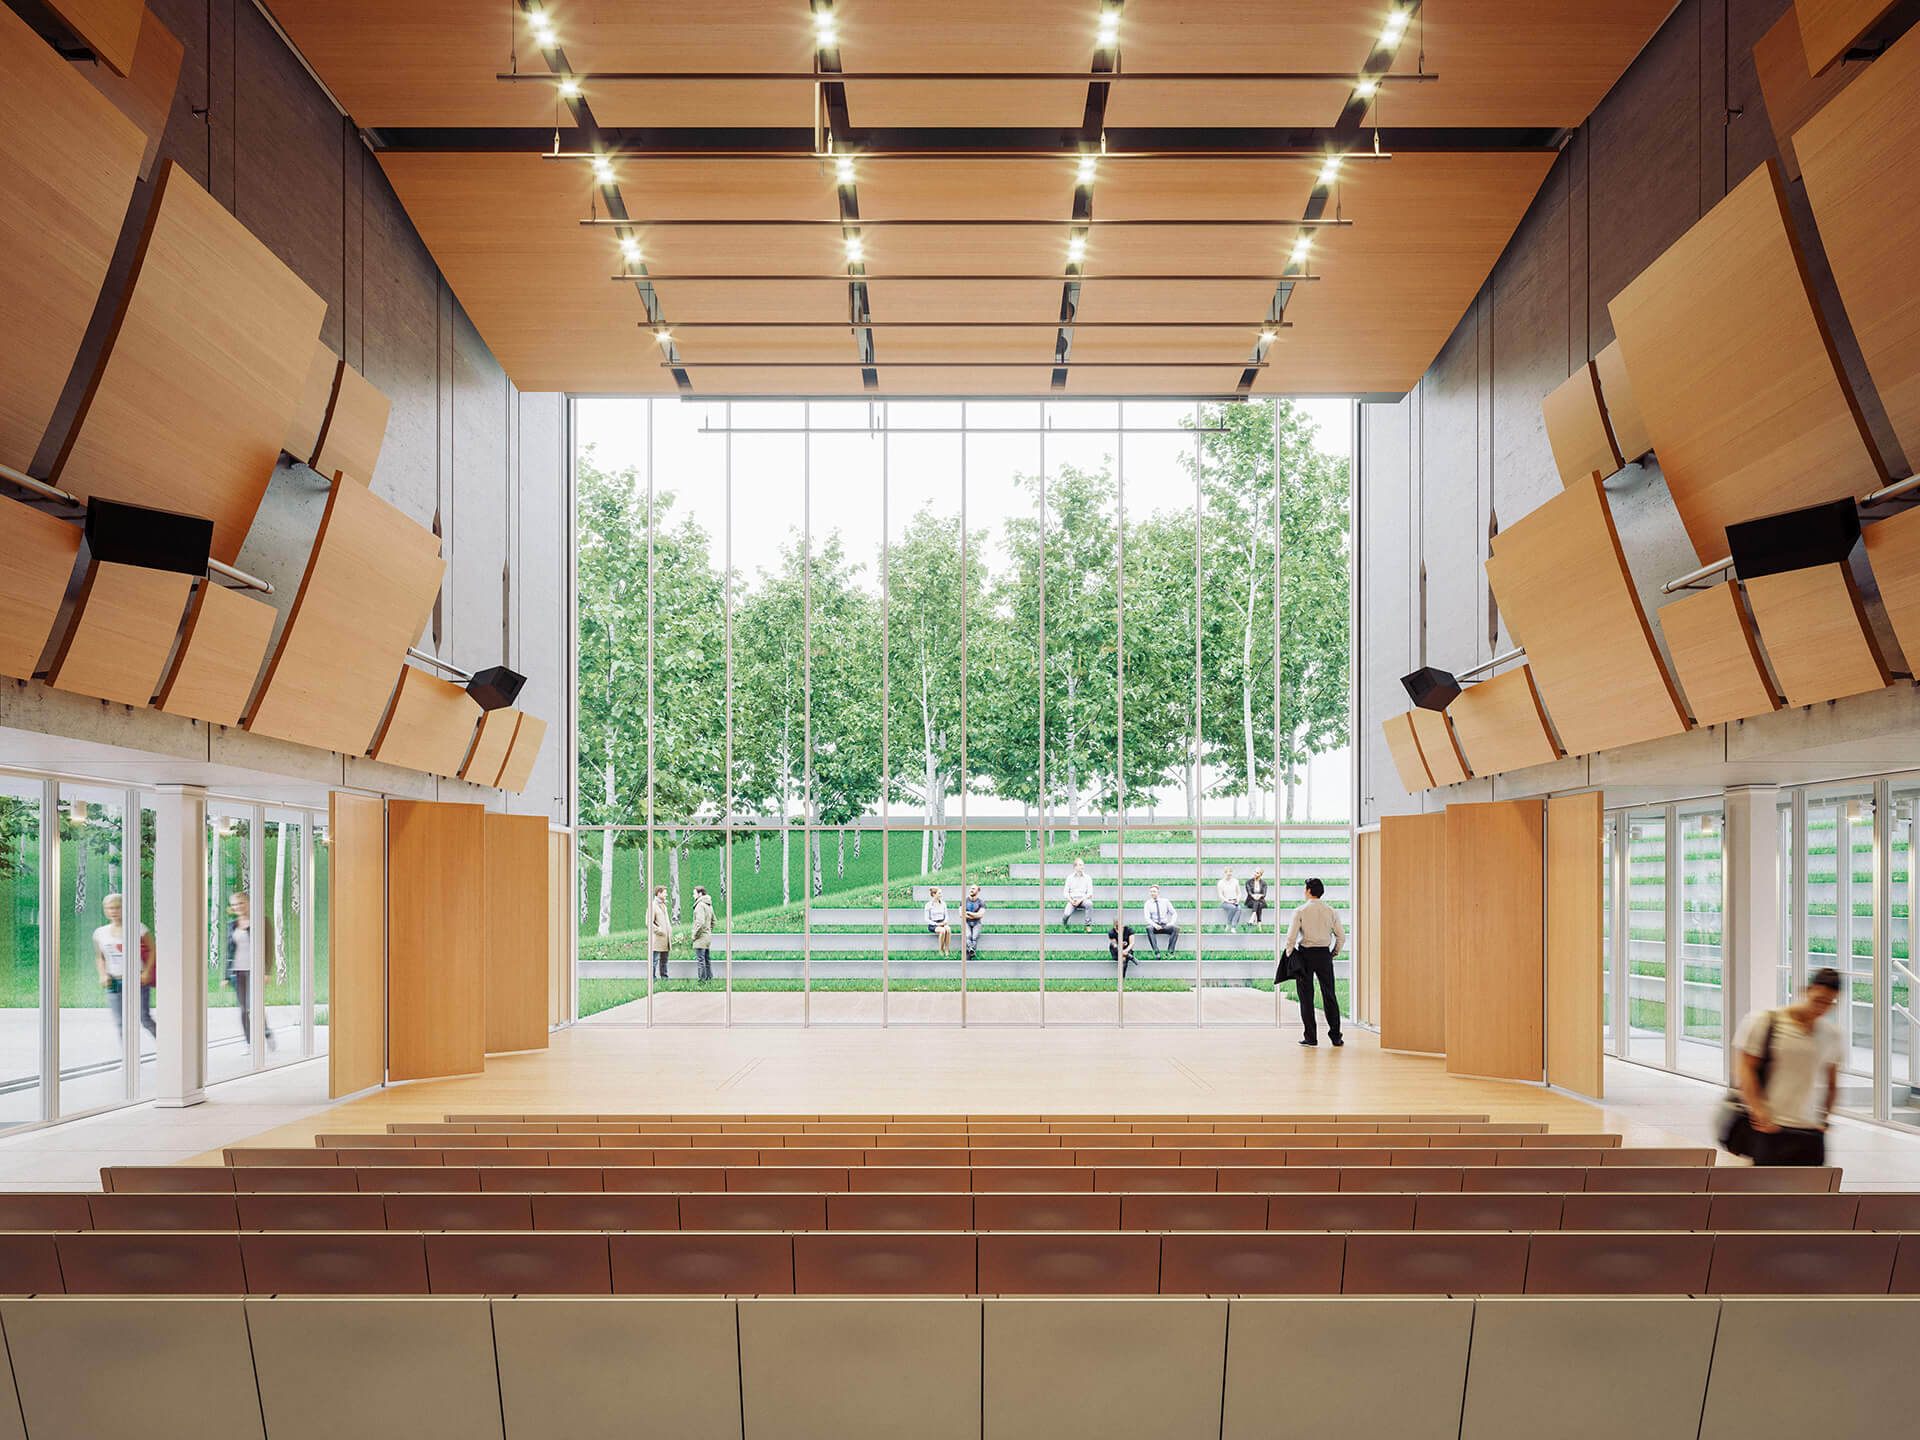 A visual representation of the Playhouse, a transformable performance area| GES-2 | Renzo Piano Building Workshop | STIRworld